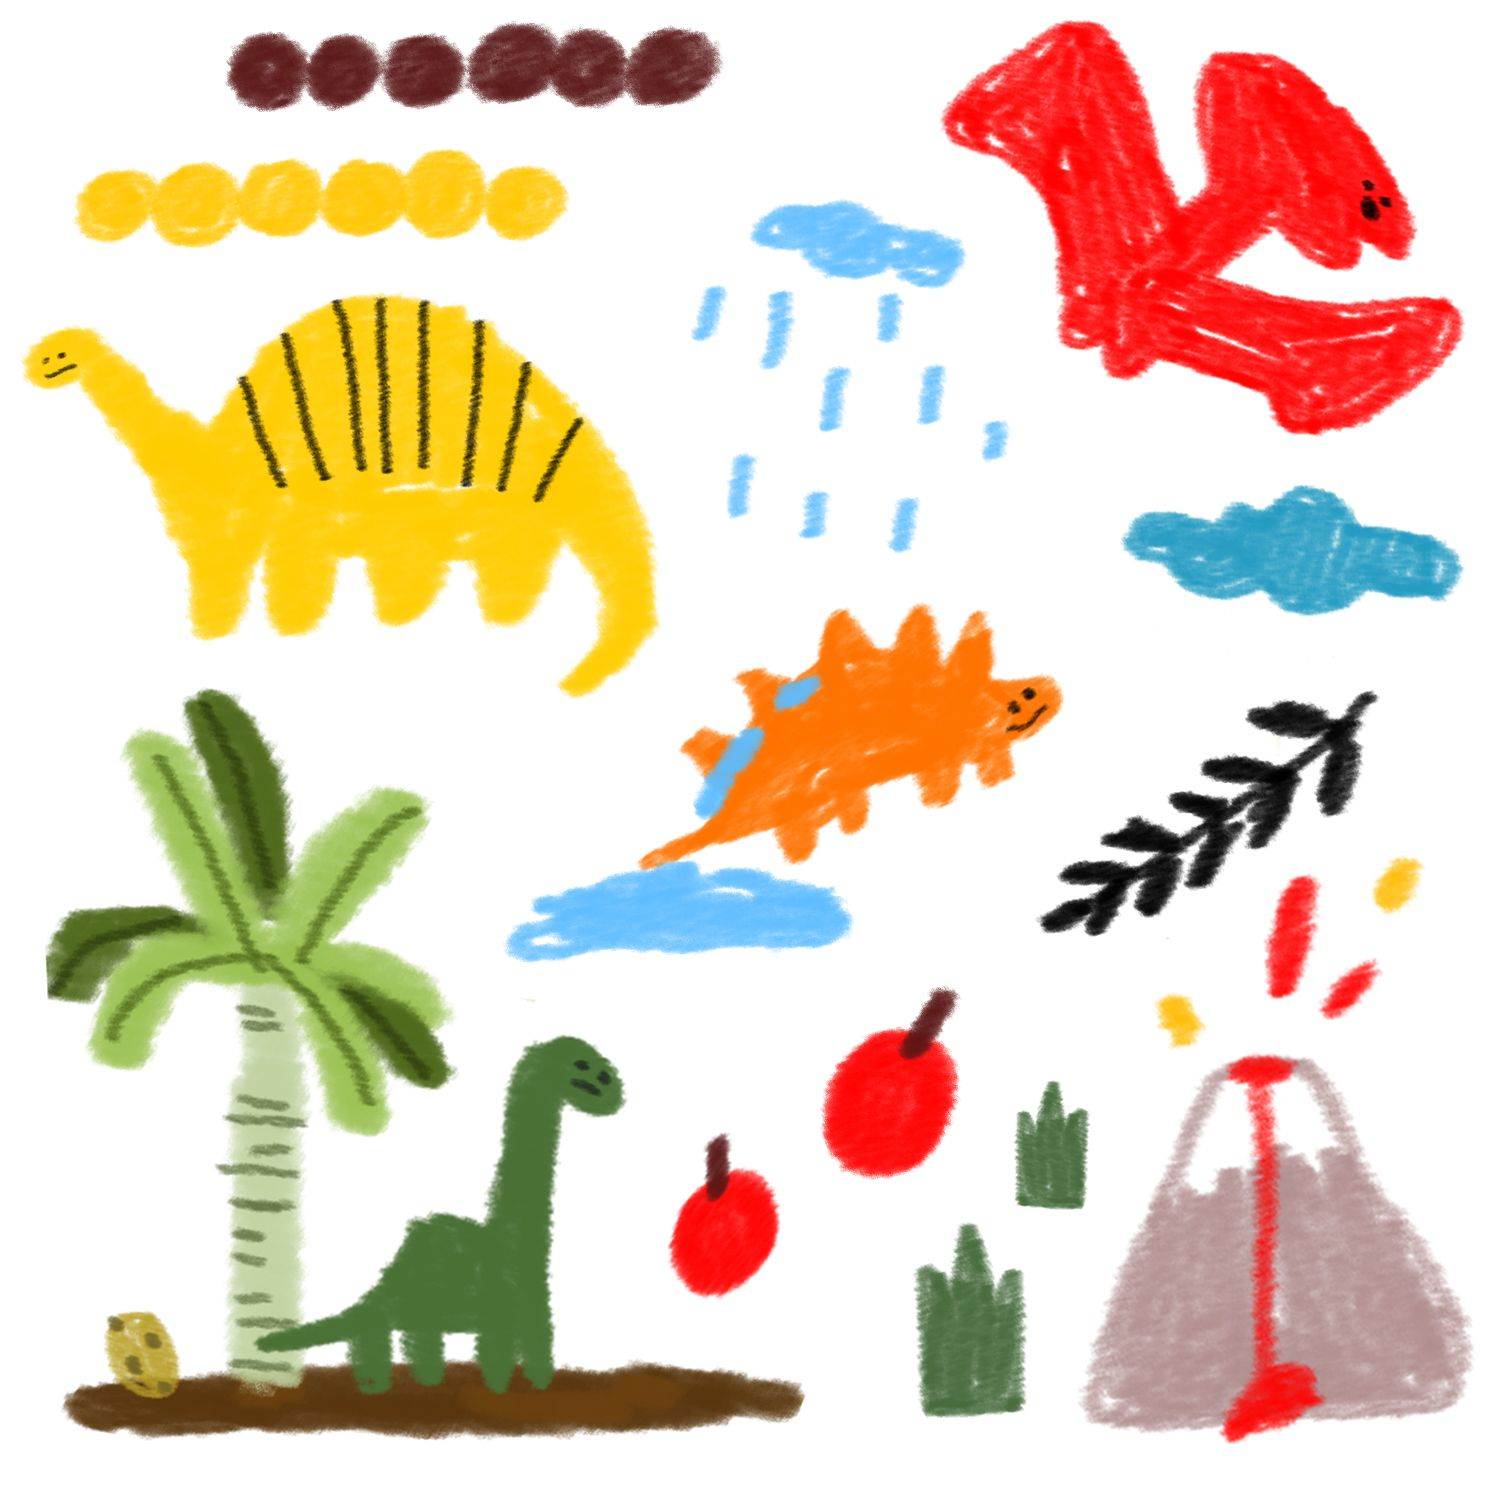 dinosaur illustrations  jurassic dinosaurs illustrate clip art fruits and cloud with volcano 공룡 일러스트 #dinosaurillustration